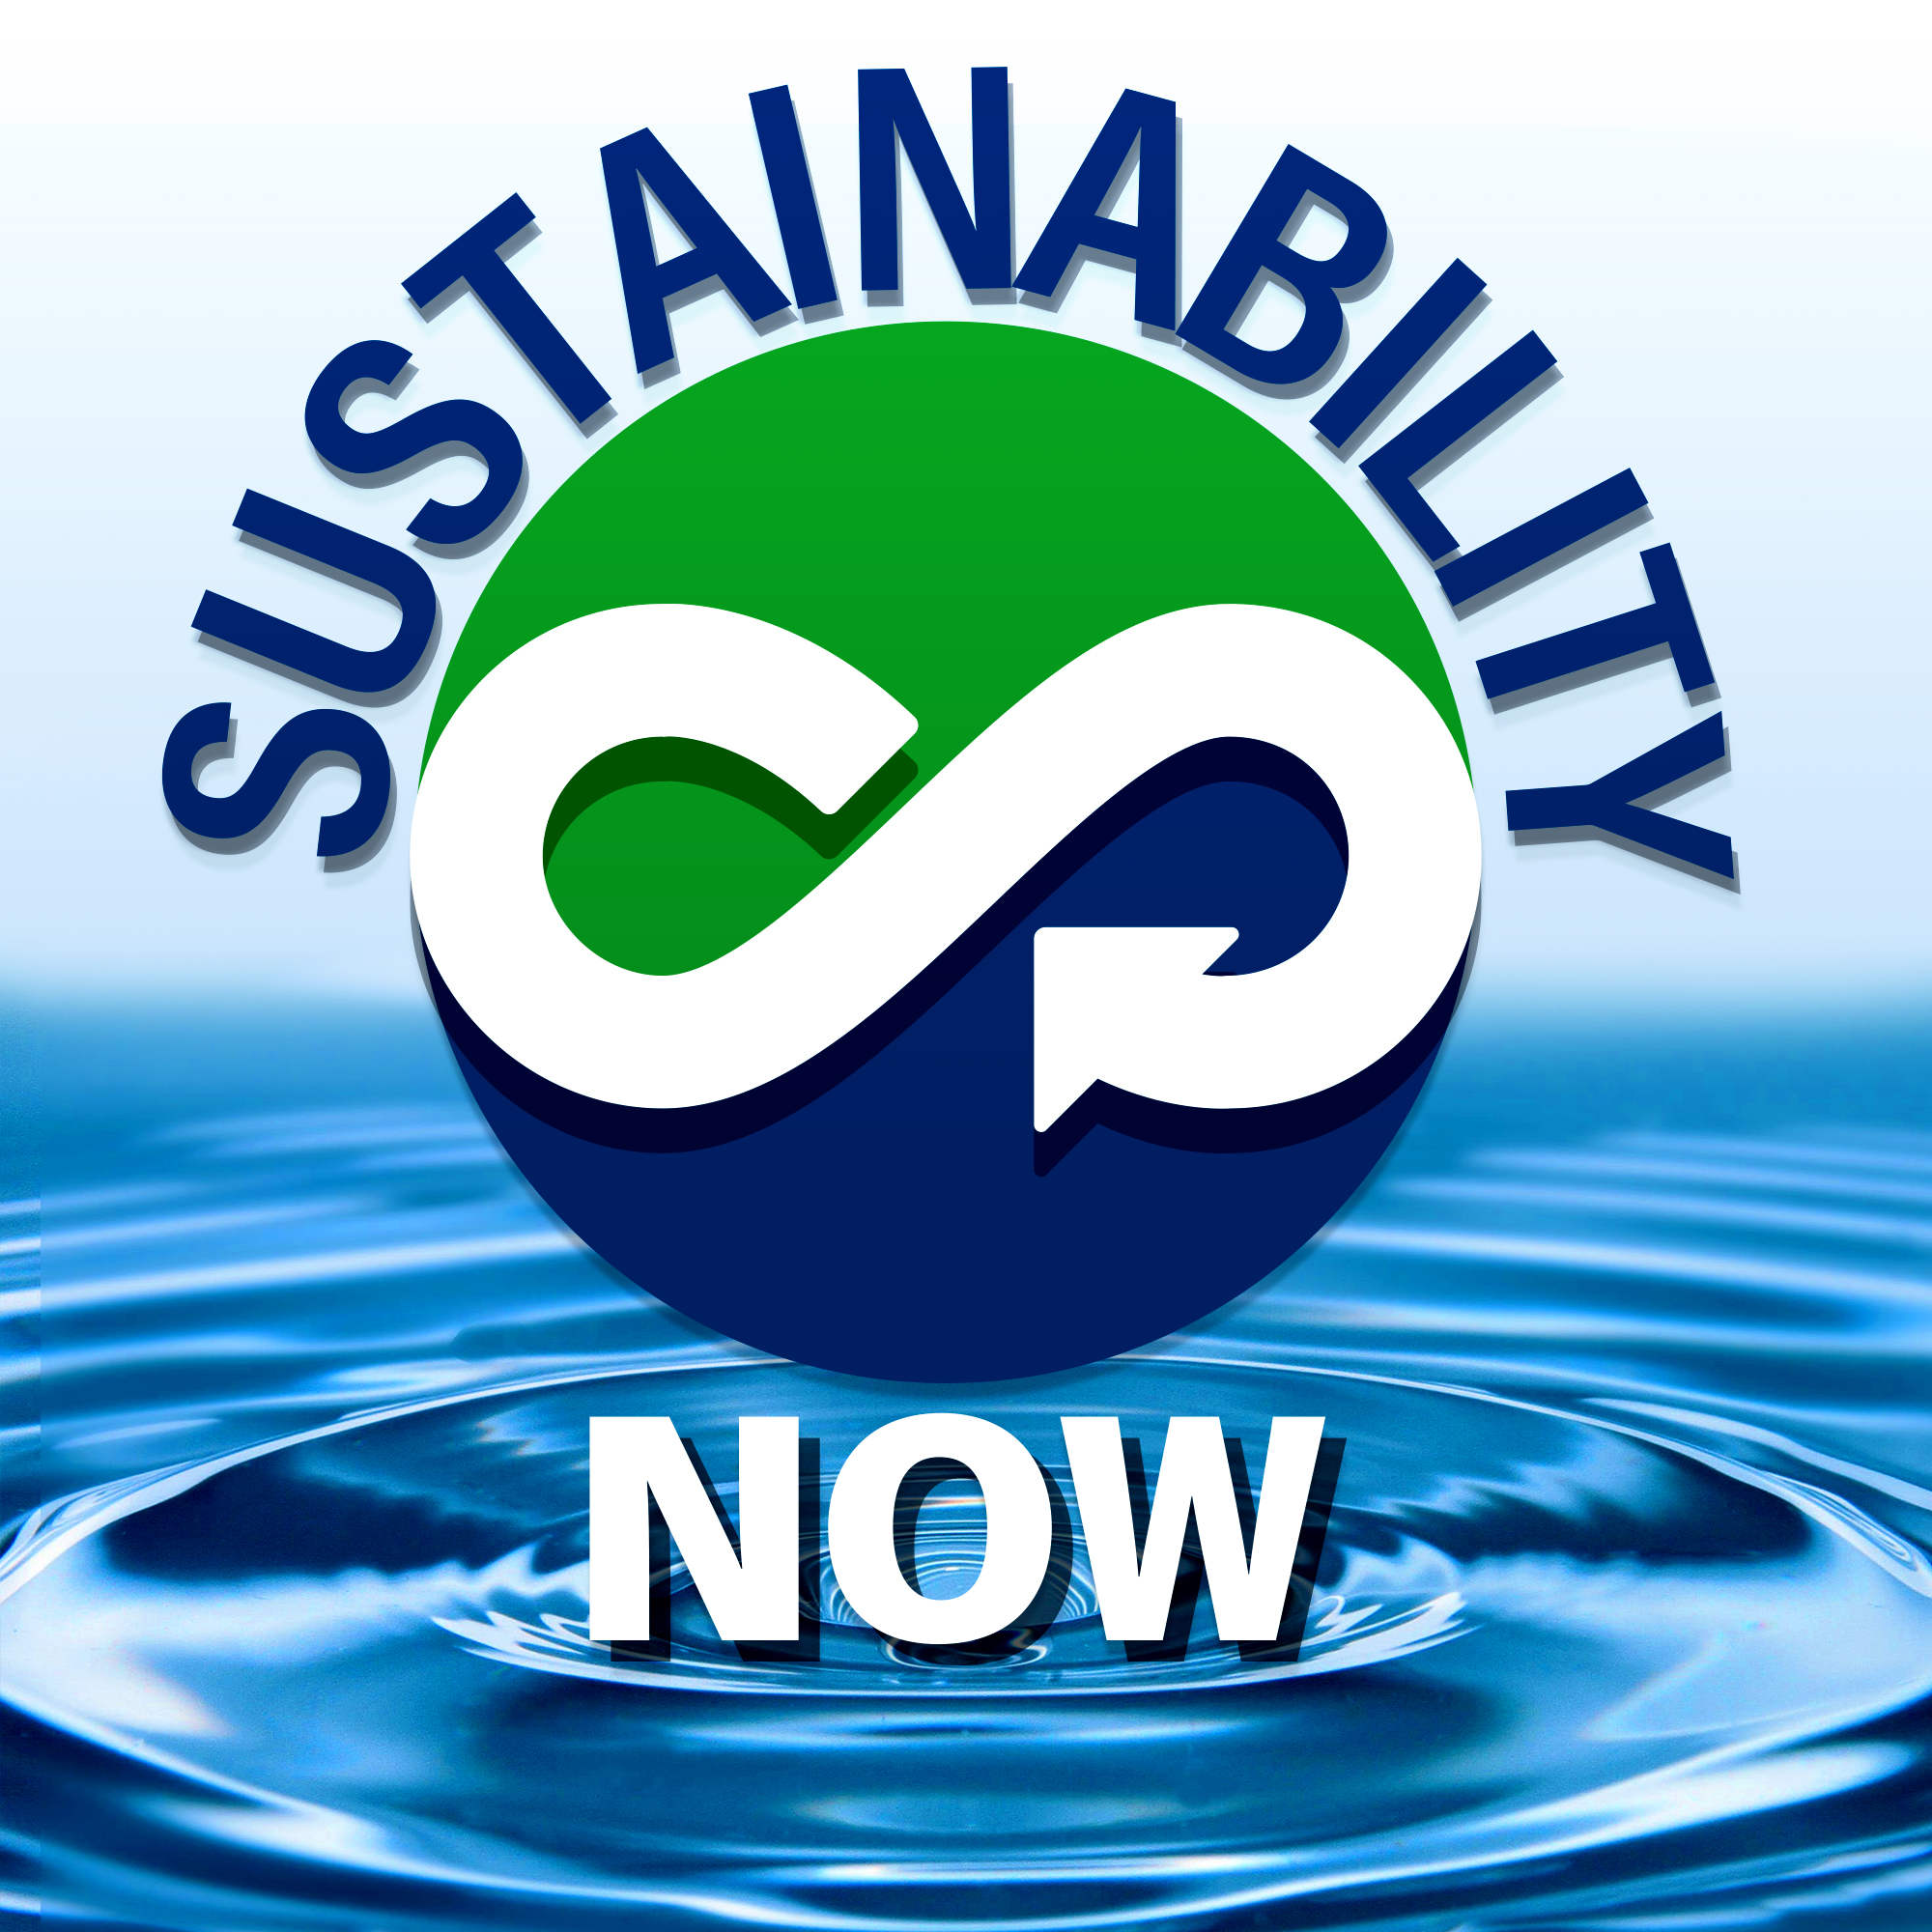 Sustainability Now - exploring technologies and paradigms to shape a world that works show art